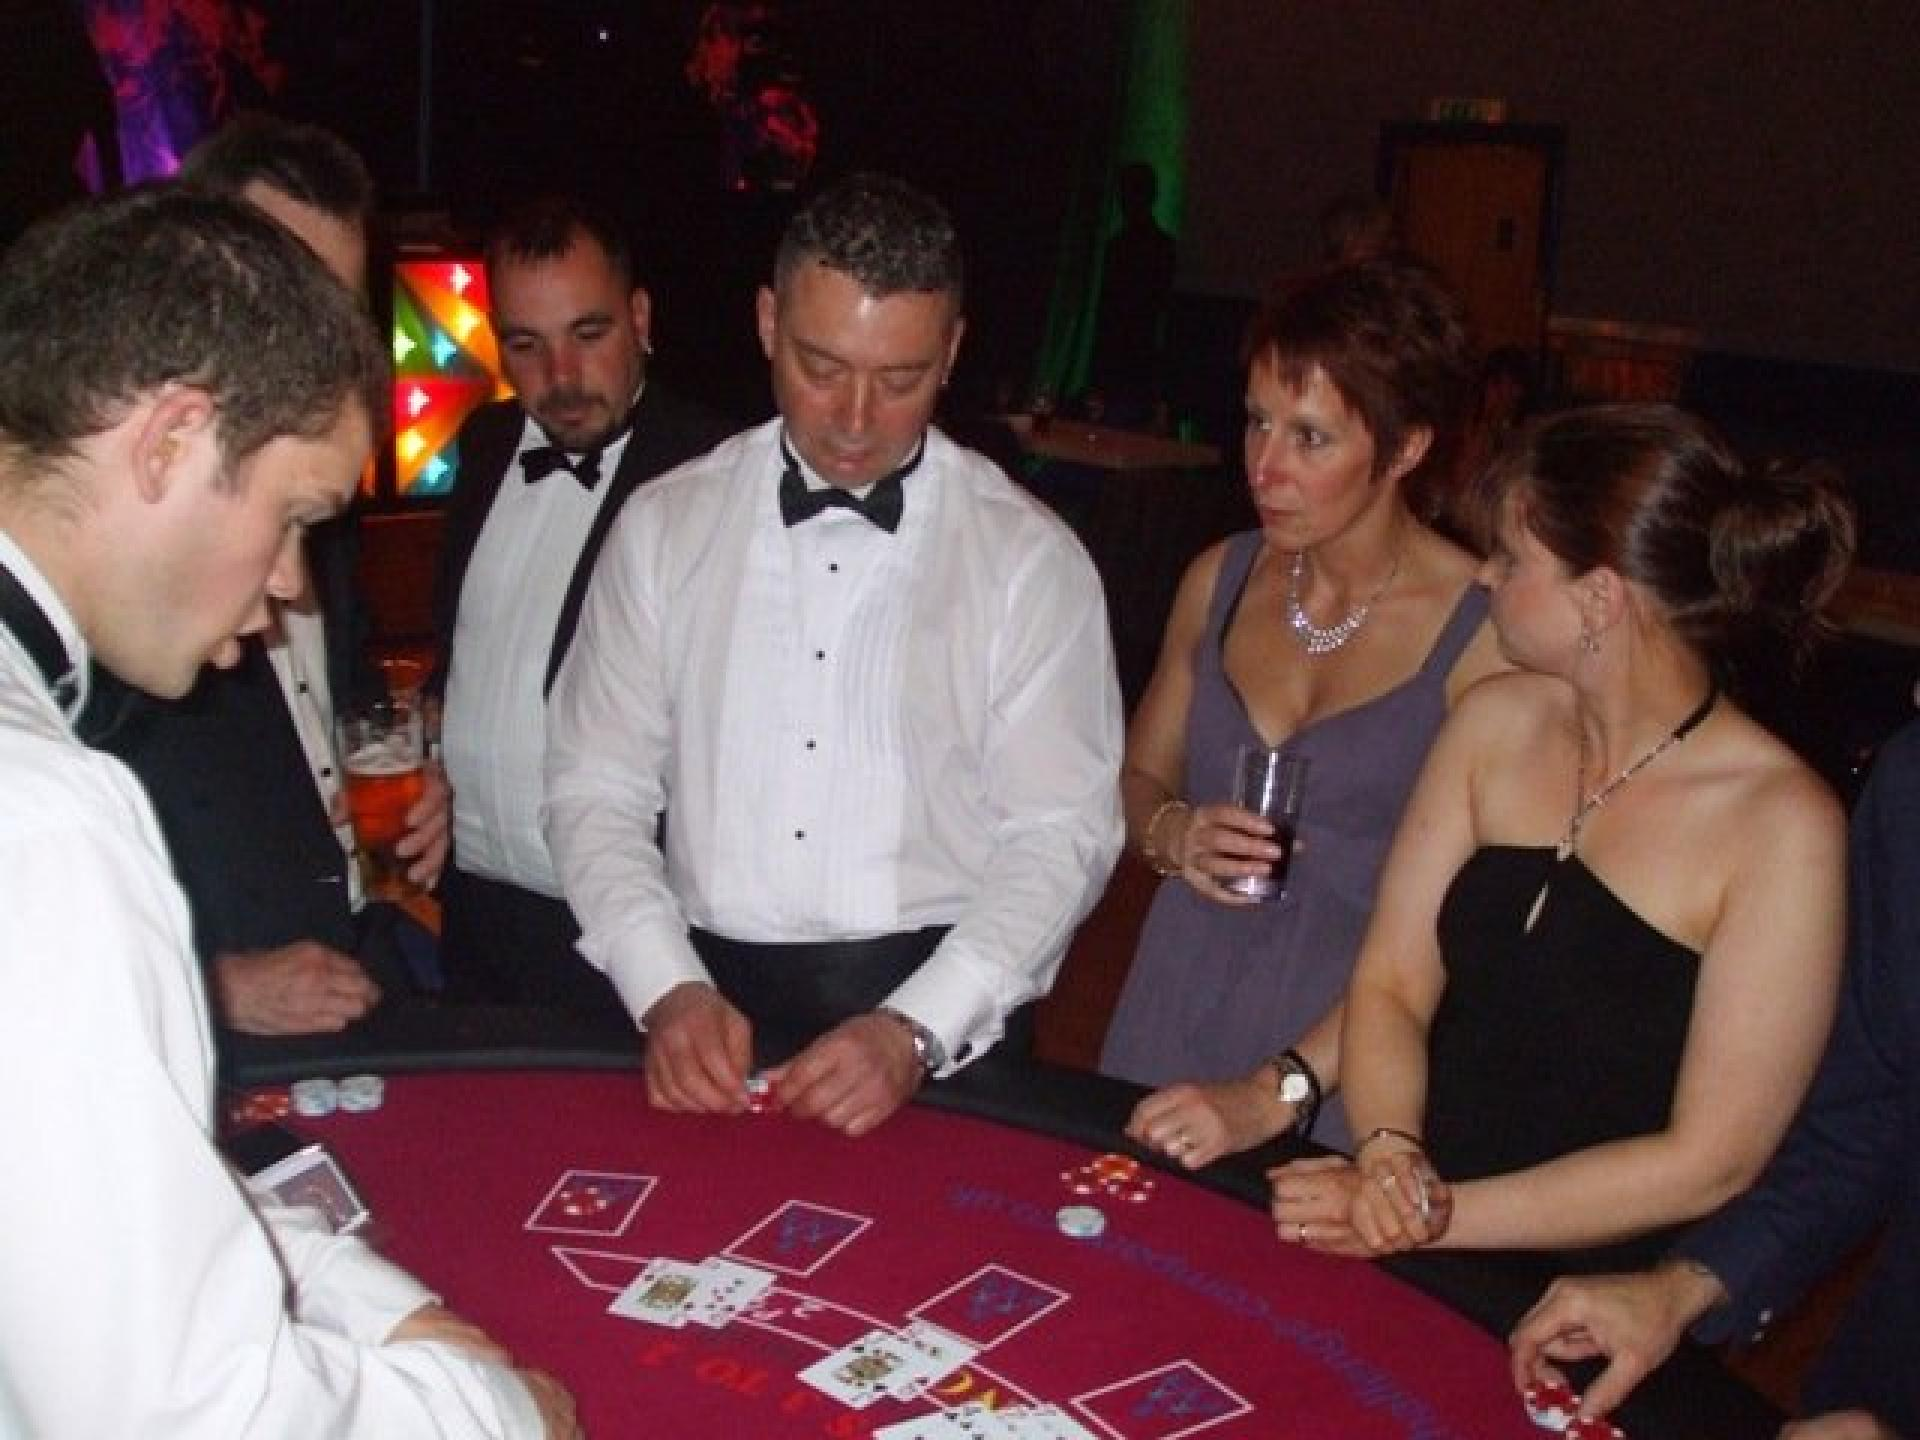 Fun Casino Night with Kincardine Gala Committee